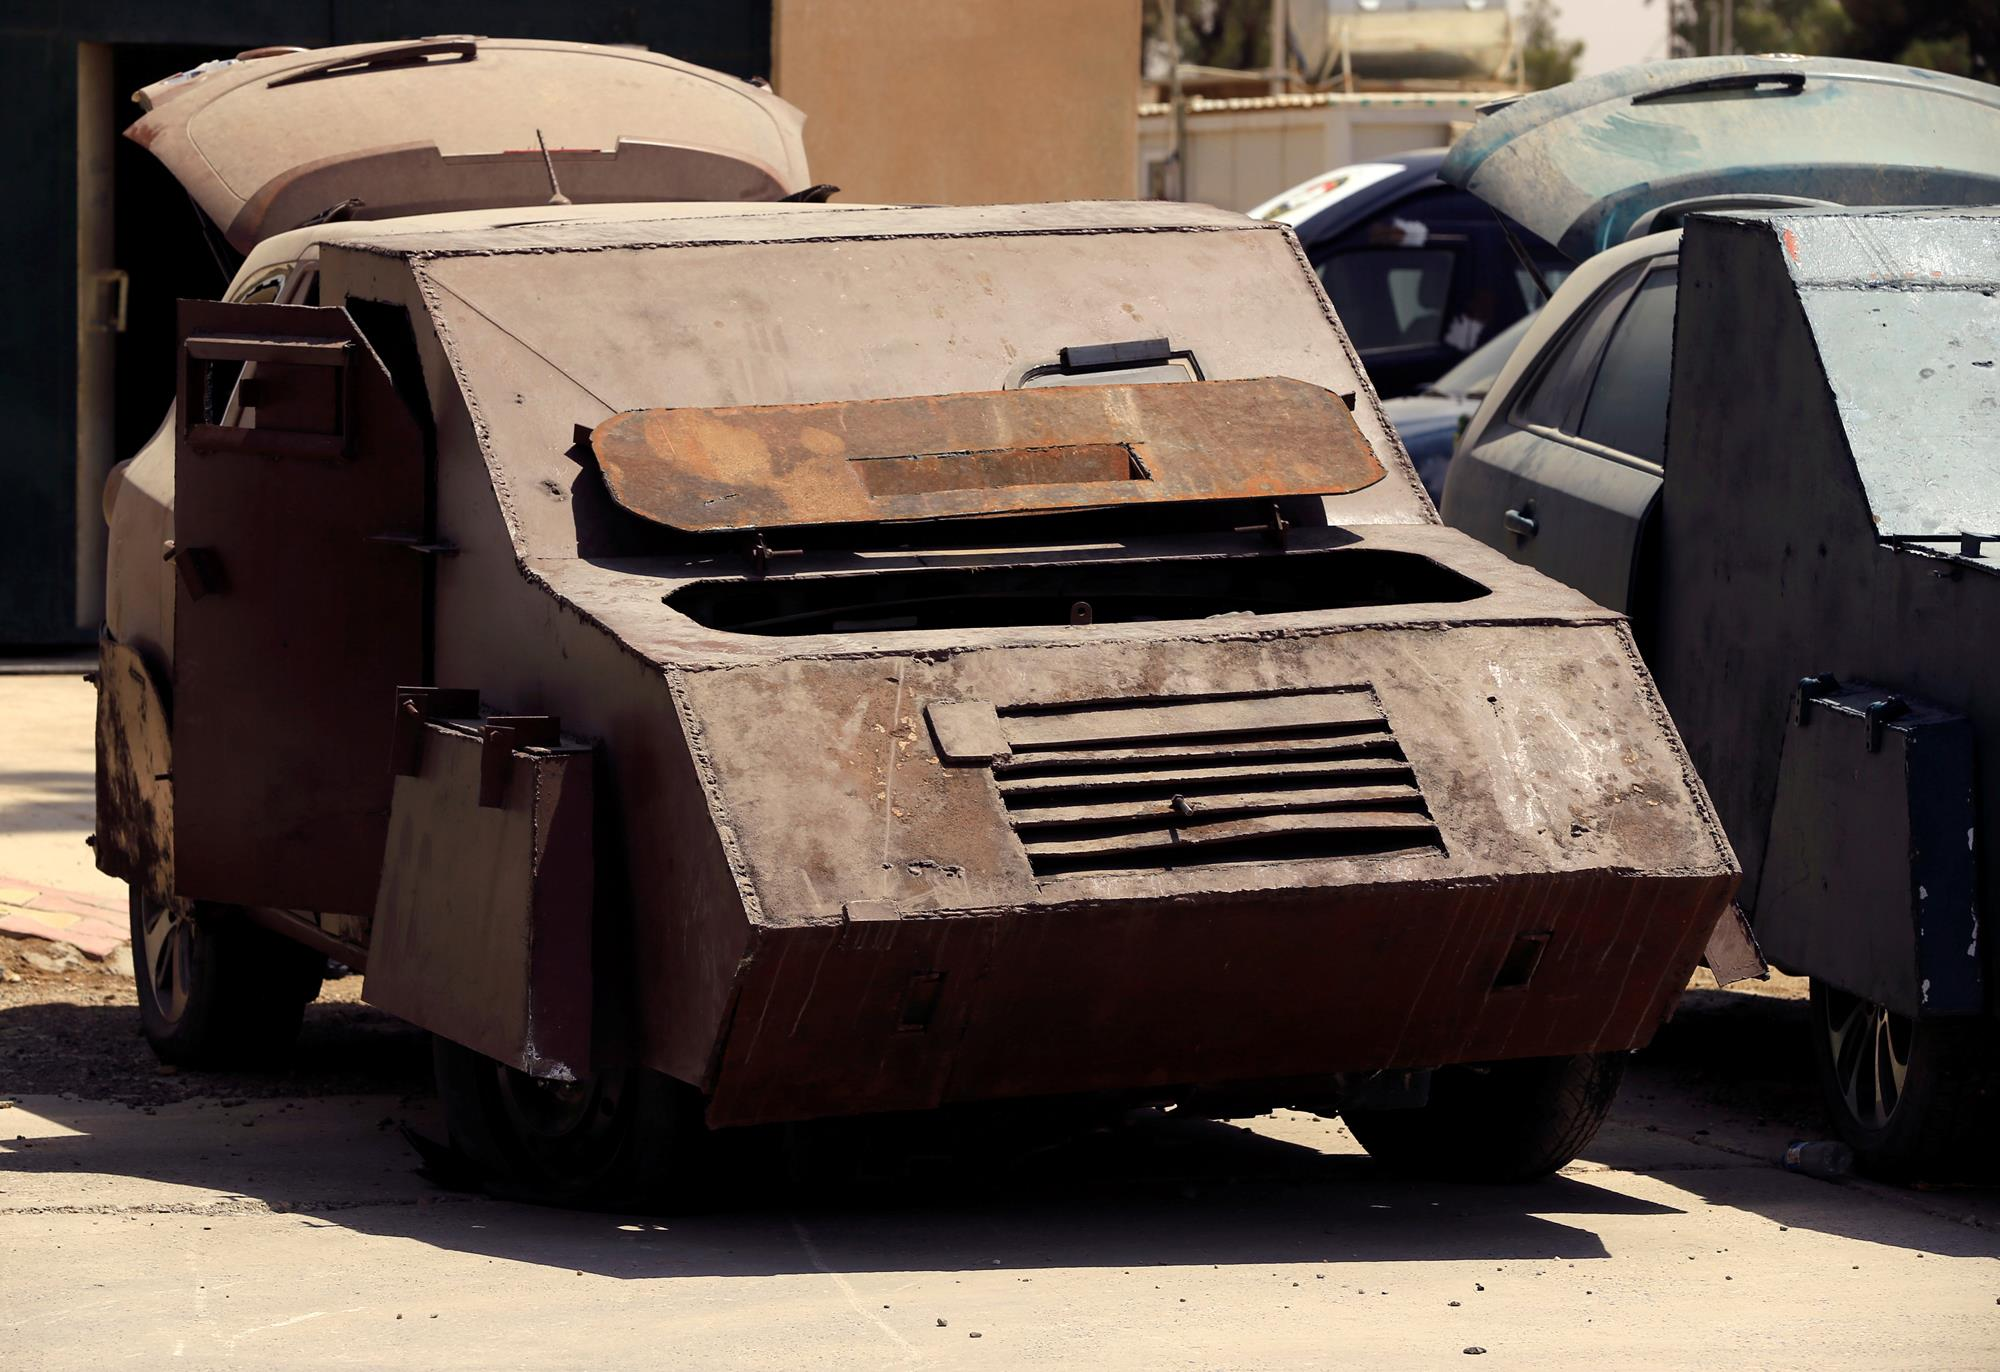 Mad Max Mosul edition U.S. backed Iraqi forces discover a fleet of improv armored vehicles 8